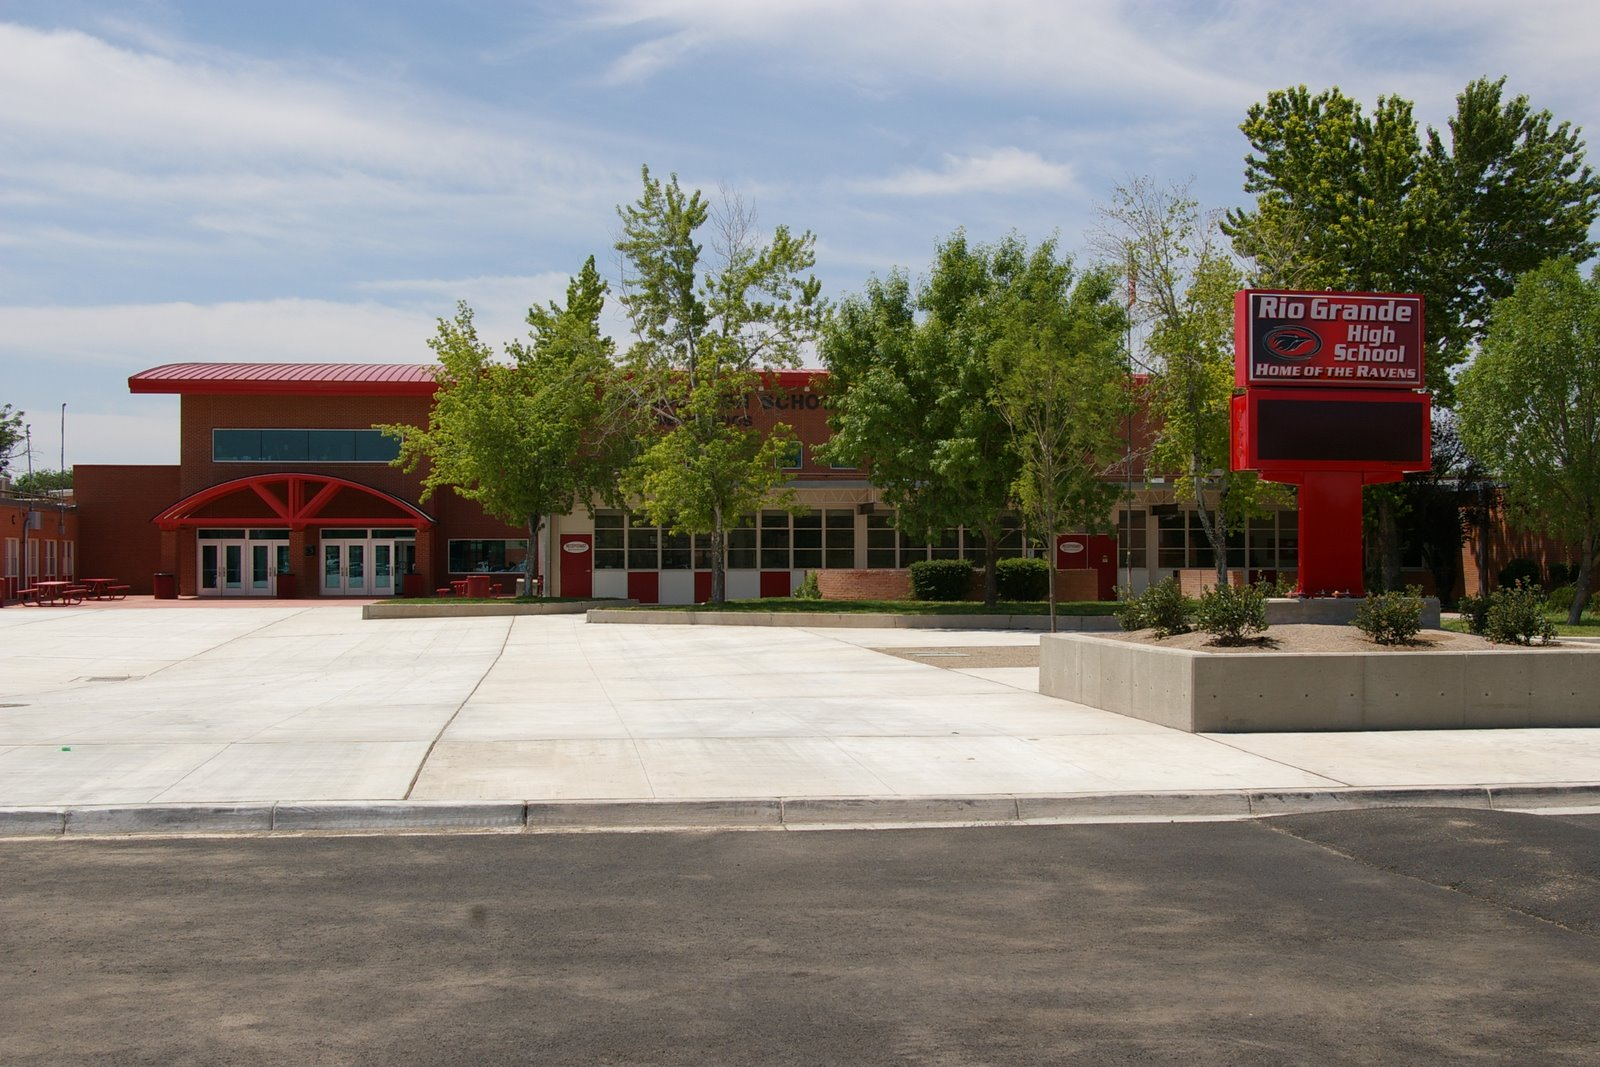 Rio Grande High School Entrance